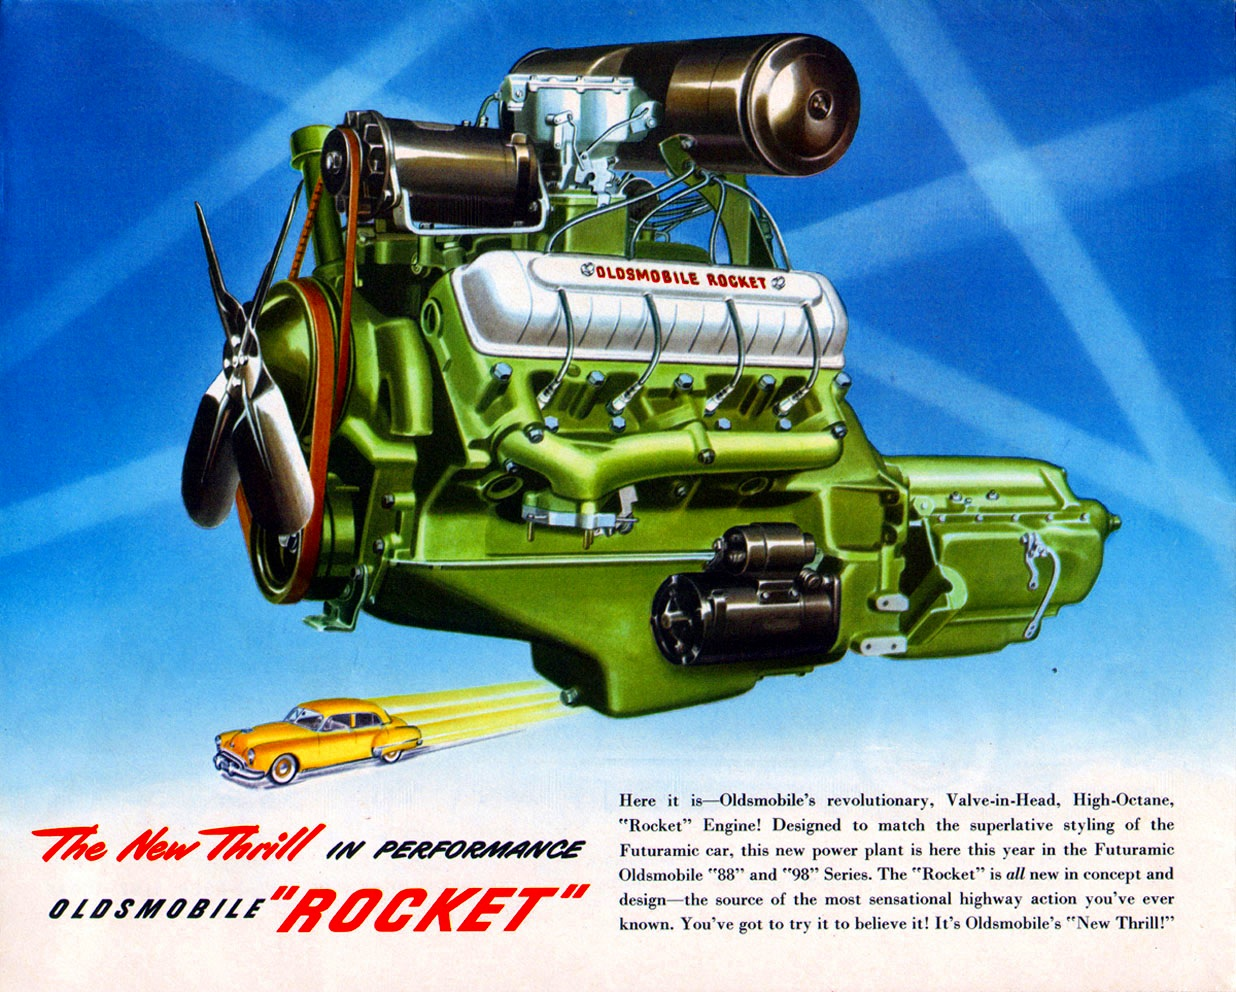 Oldsmobile's Rocket V8 introduced in 1949 - first of the new ohv V8s that would dominate the industry